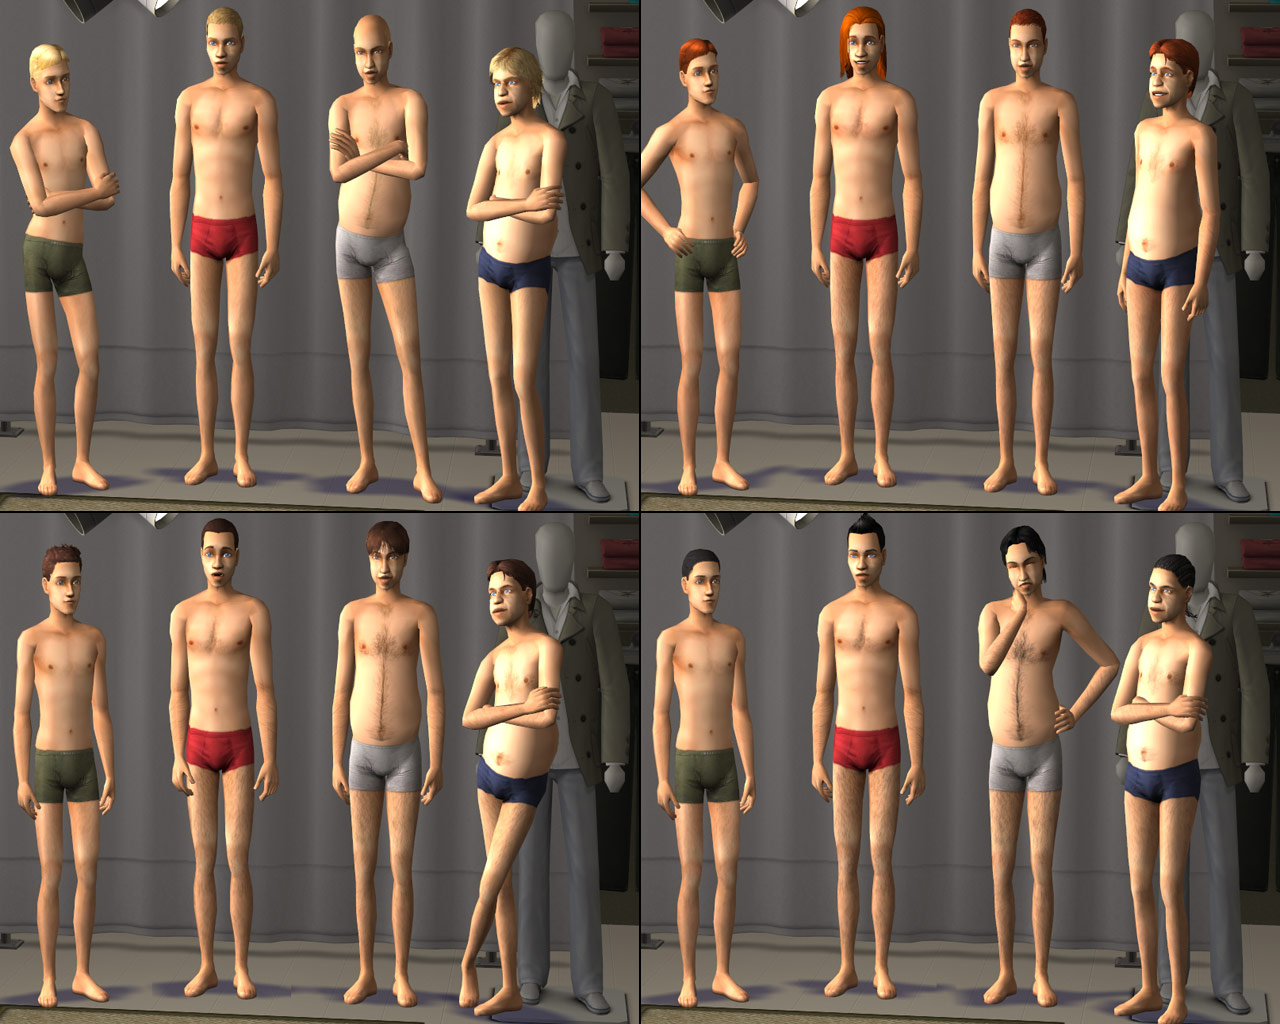 Sims 2 genitals mod hot coffee naked image